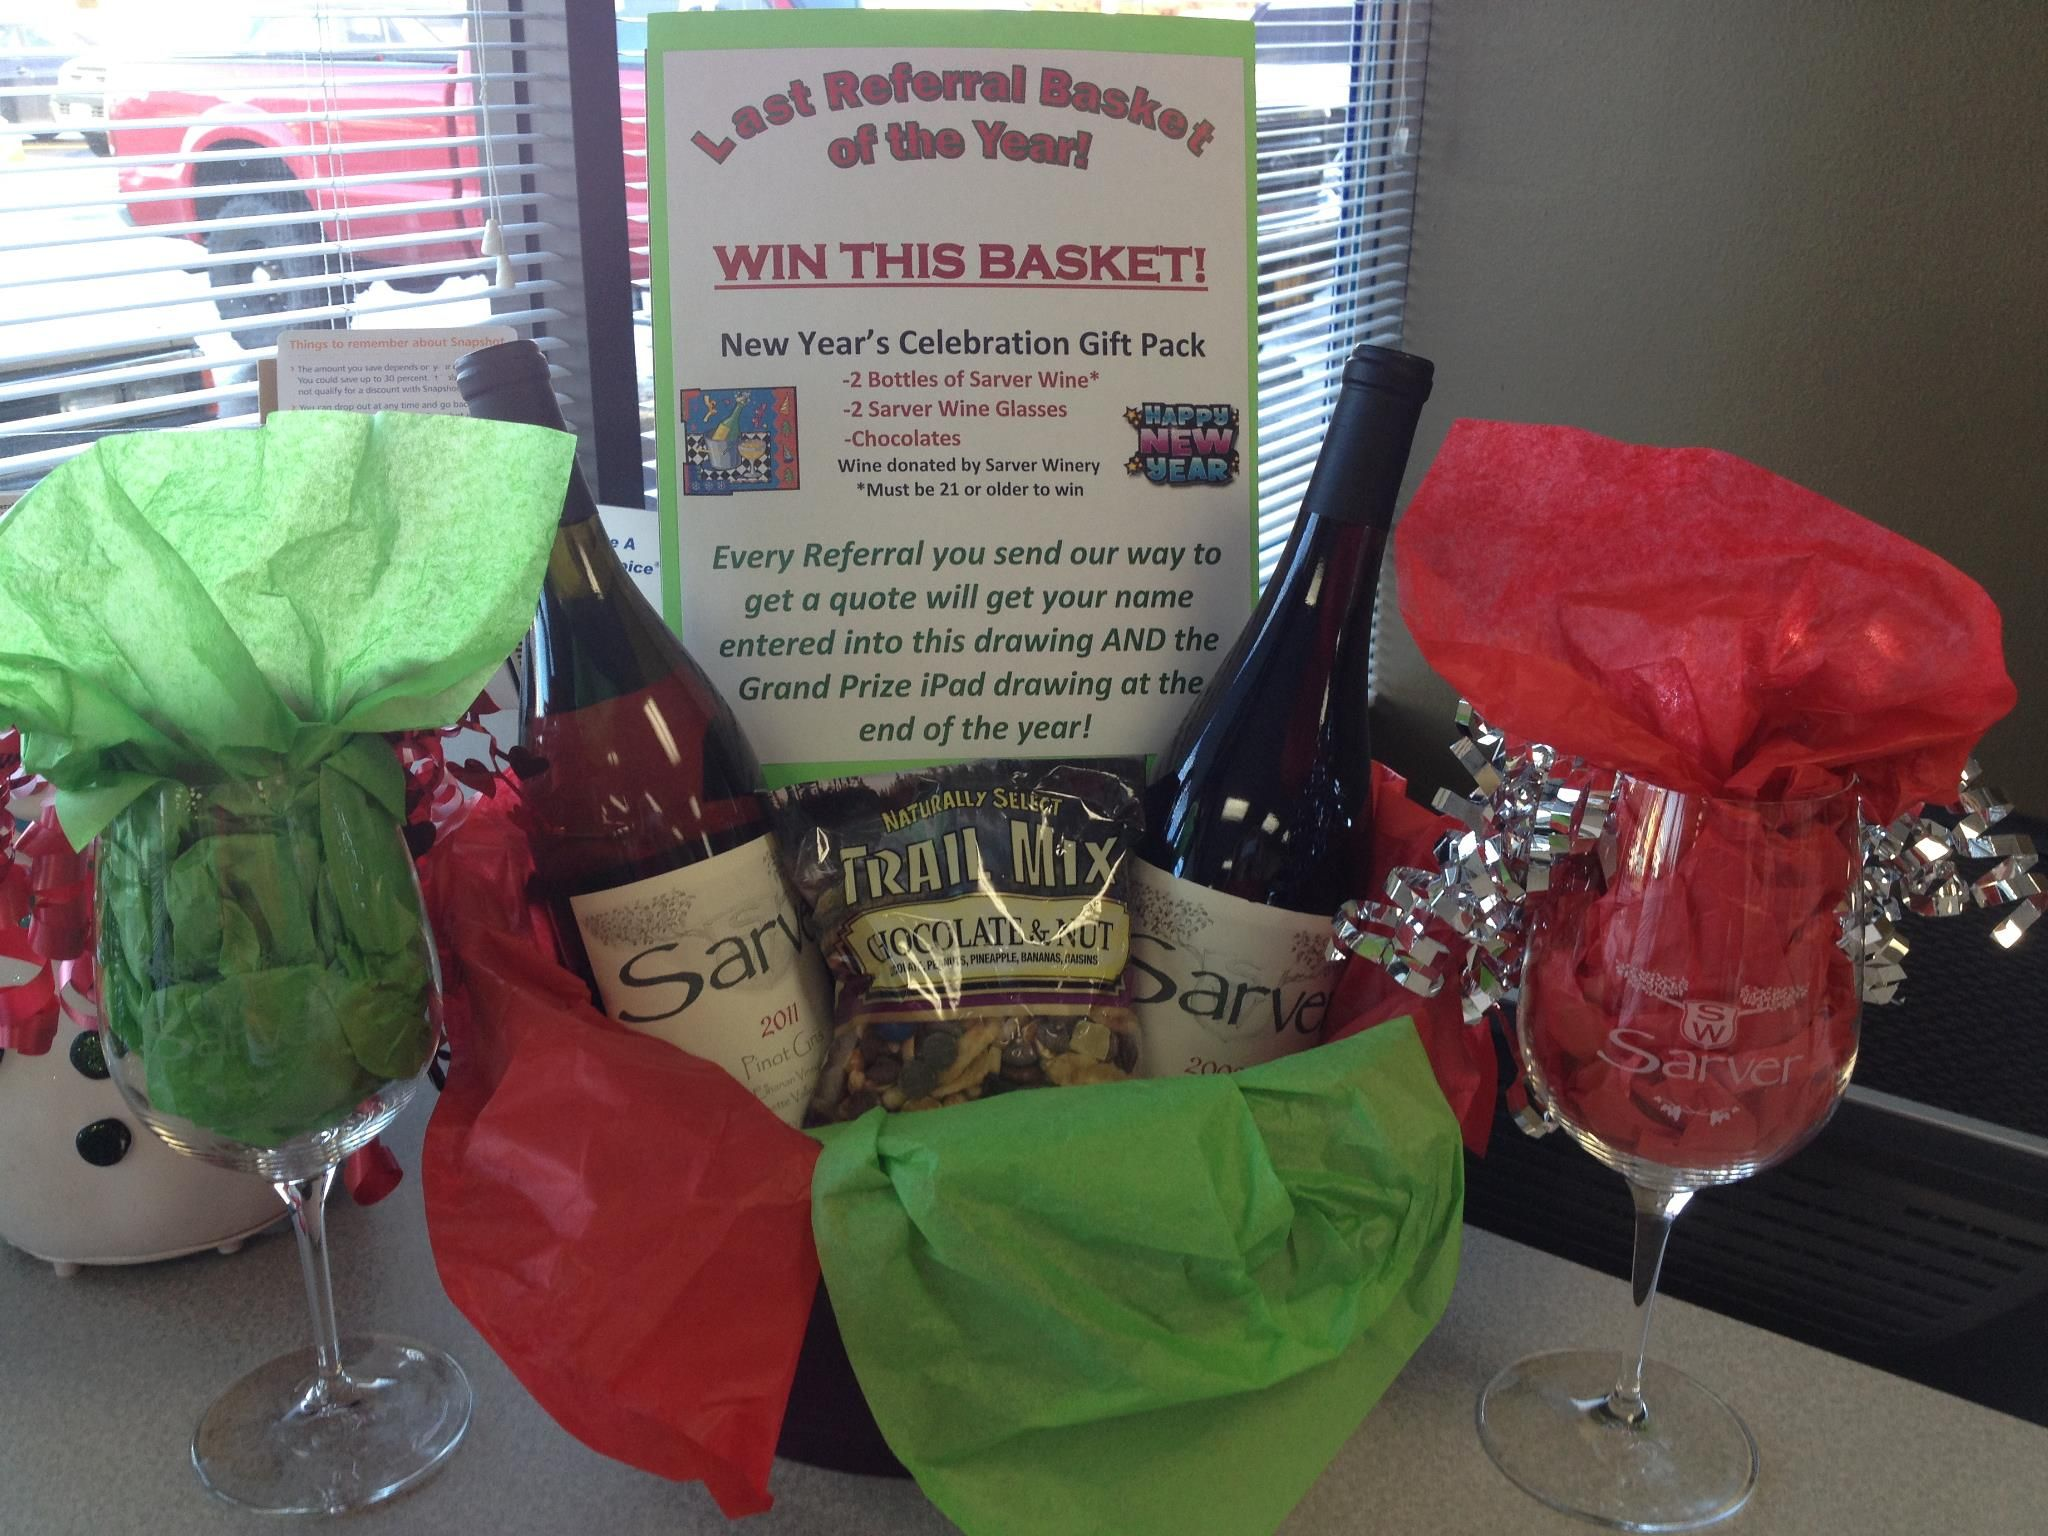 Last Chance Referral Month Celebrate In Style With This Festive New Years Basket From Sarver Winery With Images Trail Mix New Year Celebration Snacks